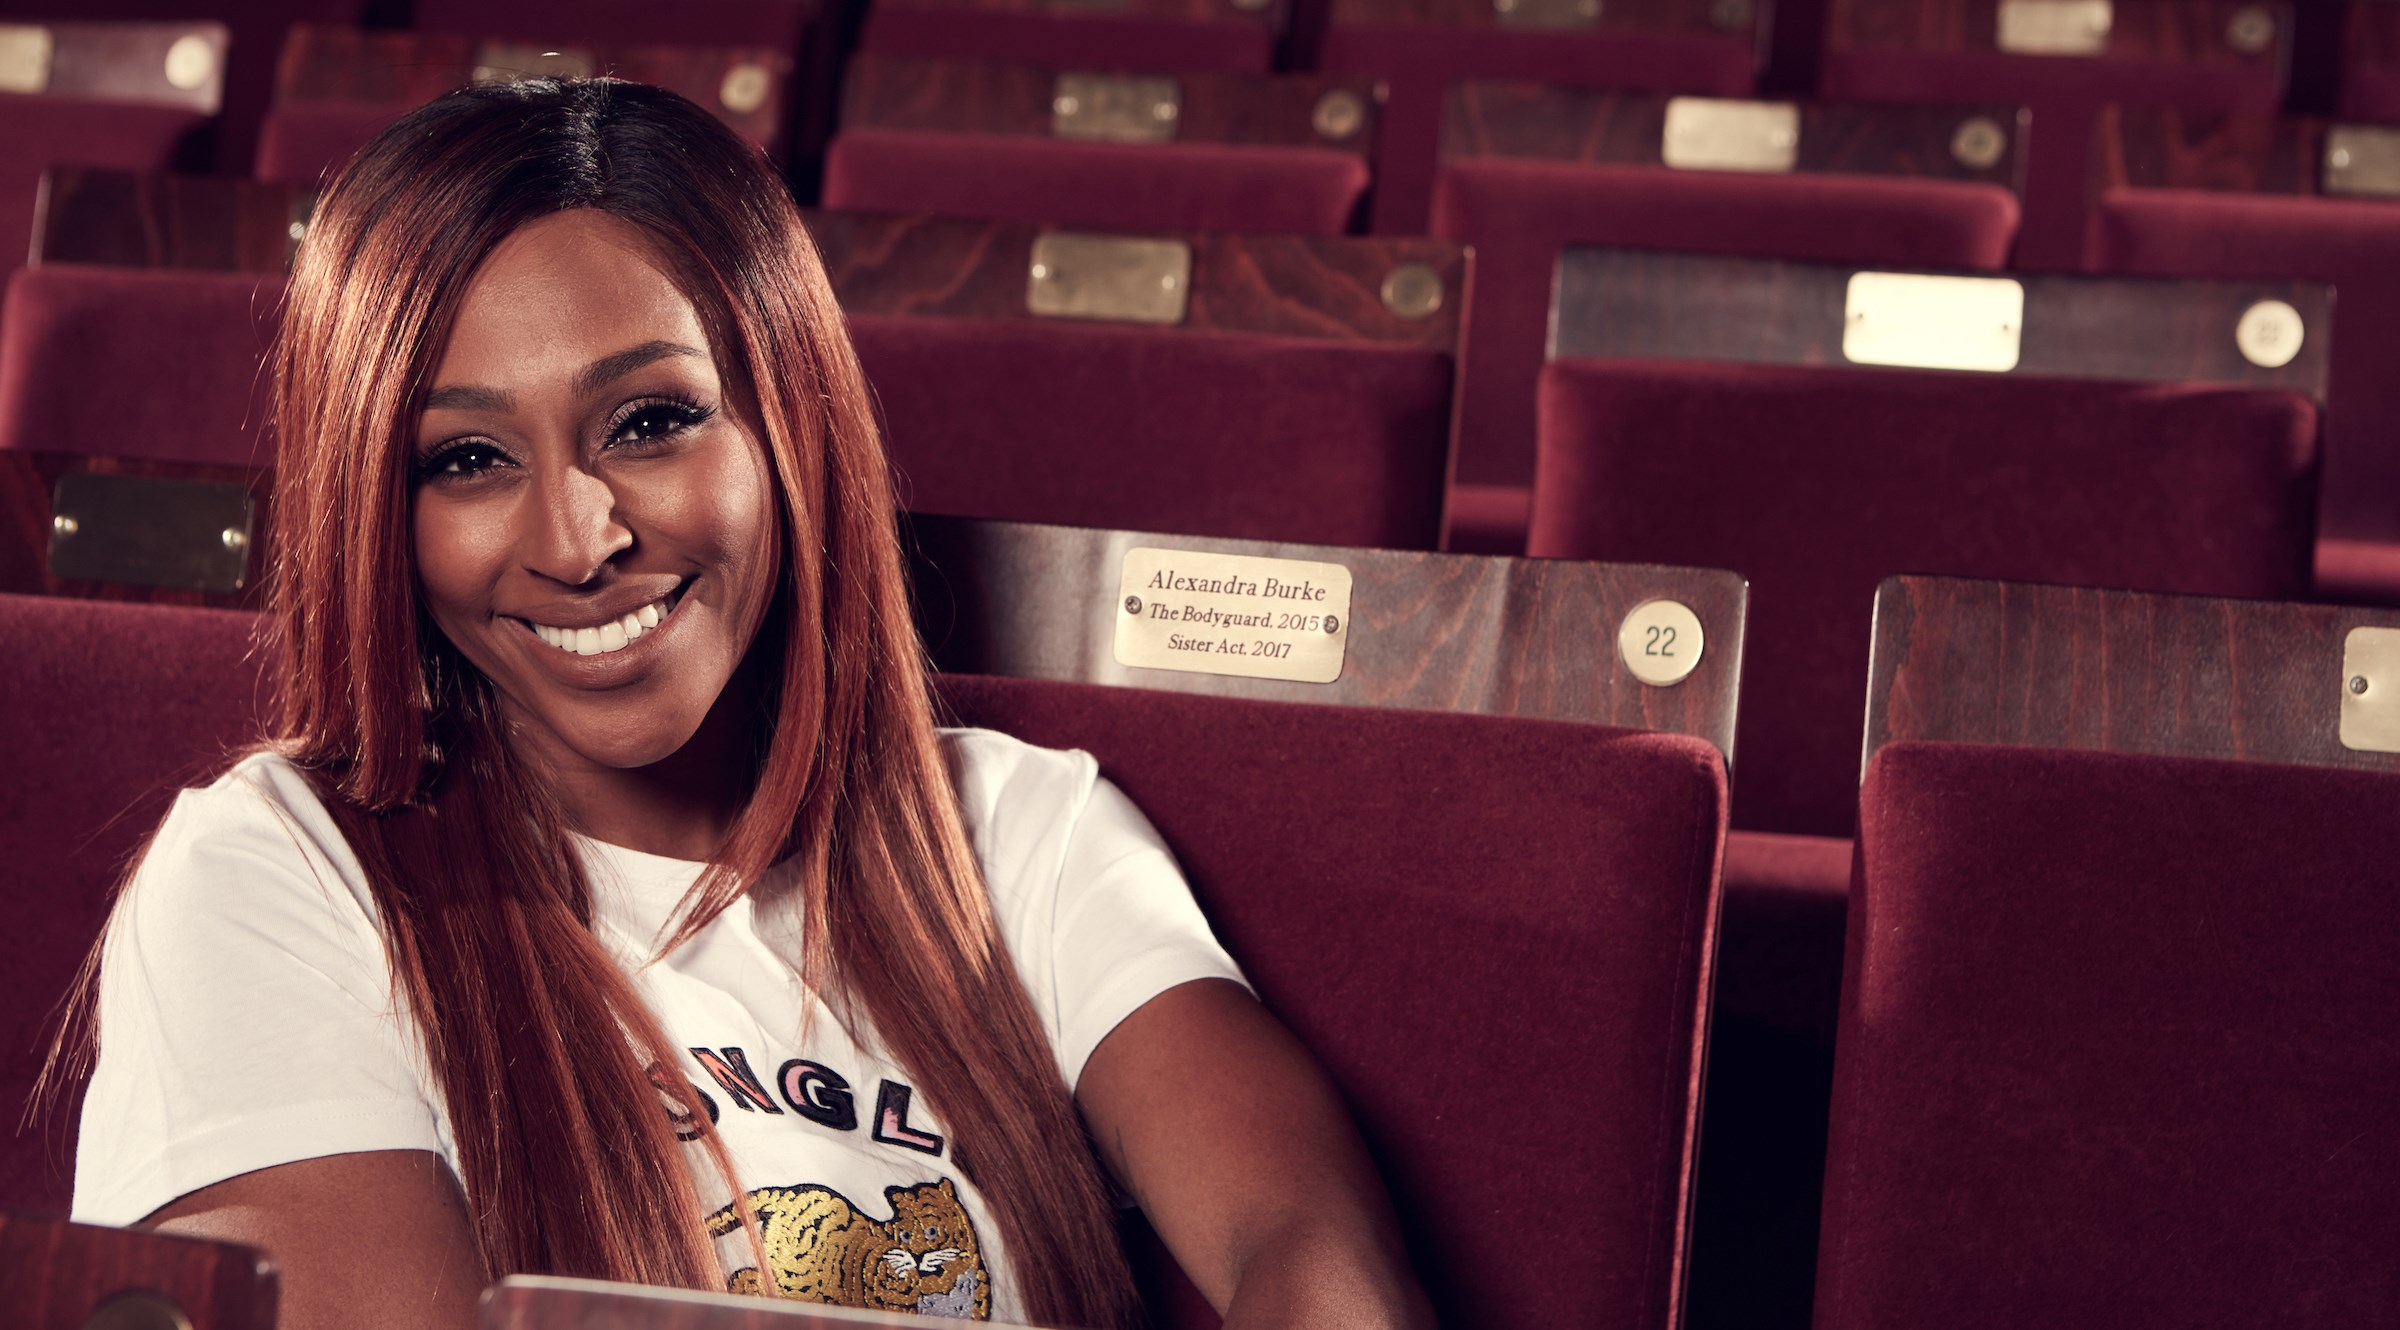 Alexandra Burke presented with auditorium seat at the Grand